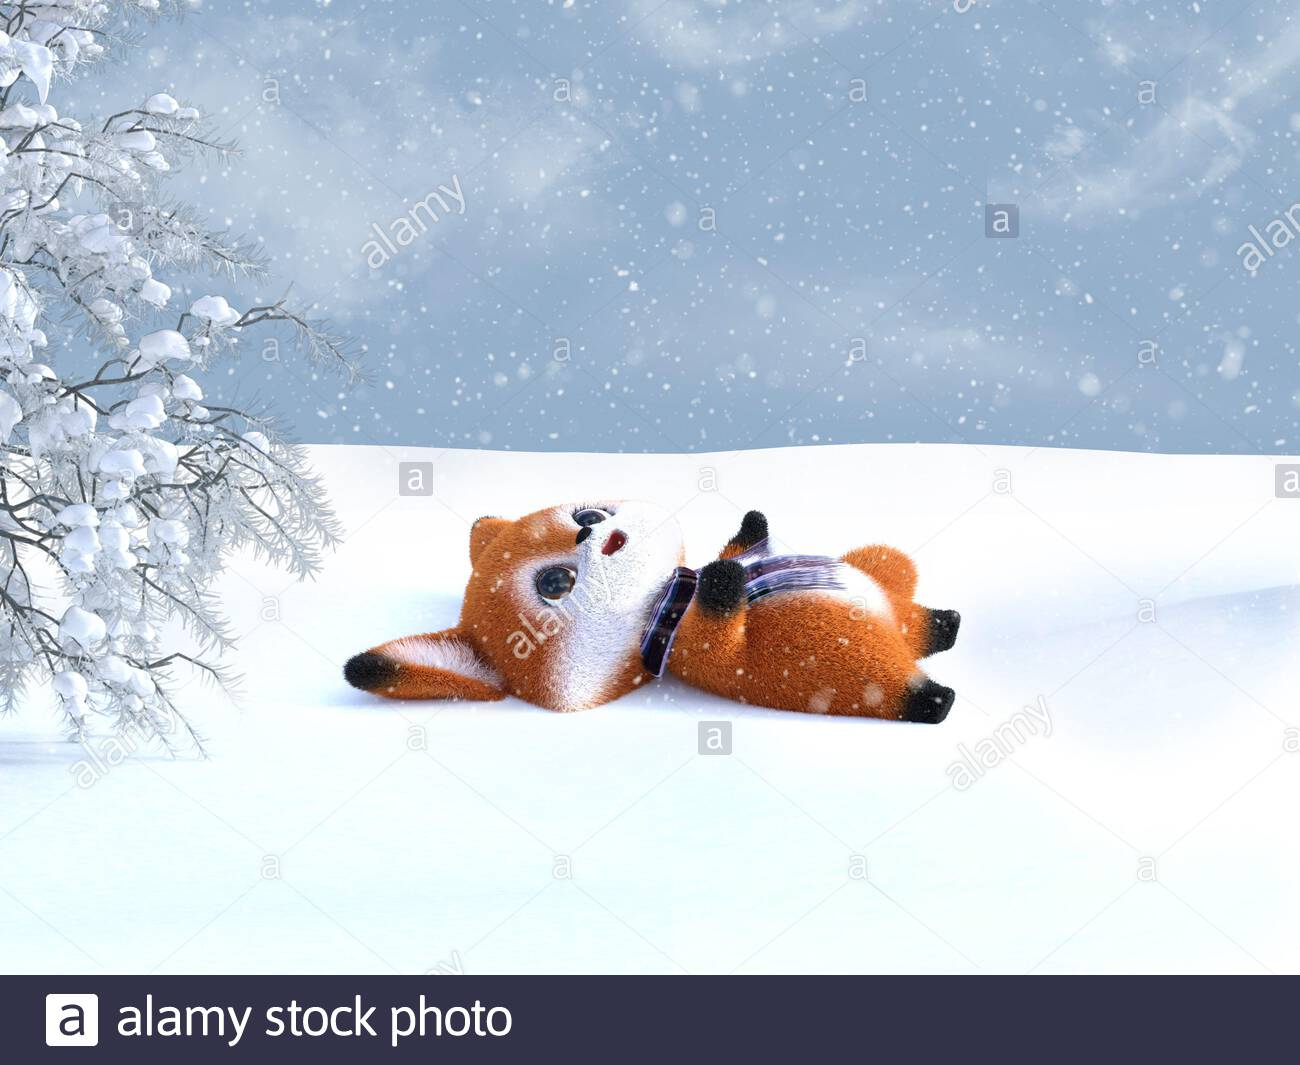 Page 2 - Fox Air High Resolution Stock Photography and Images - Alamy